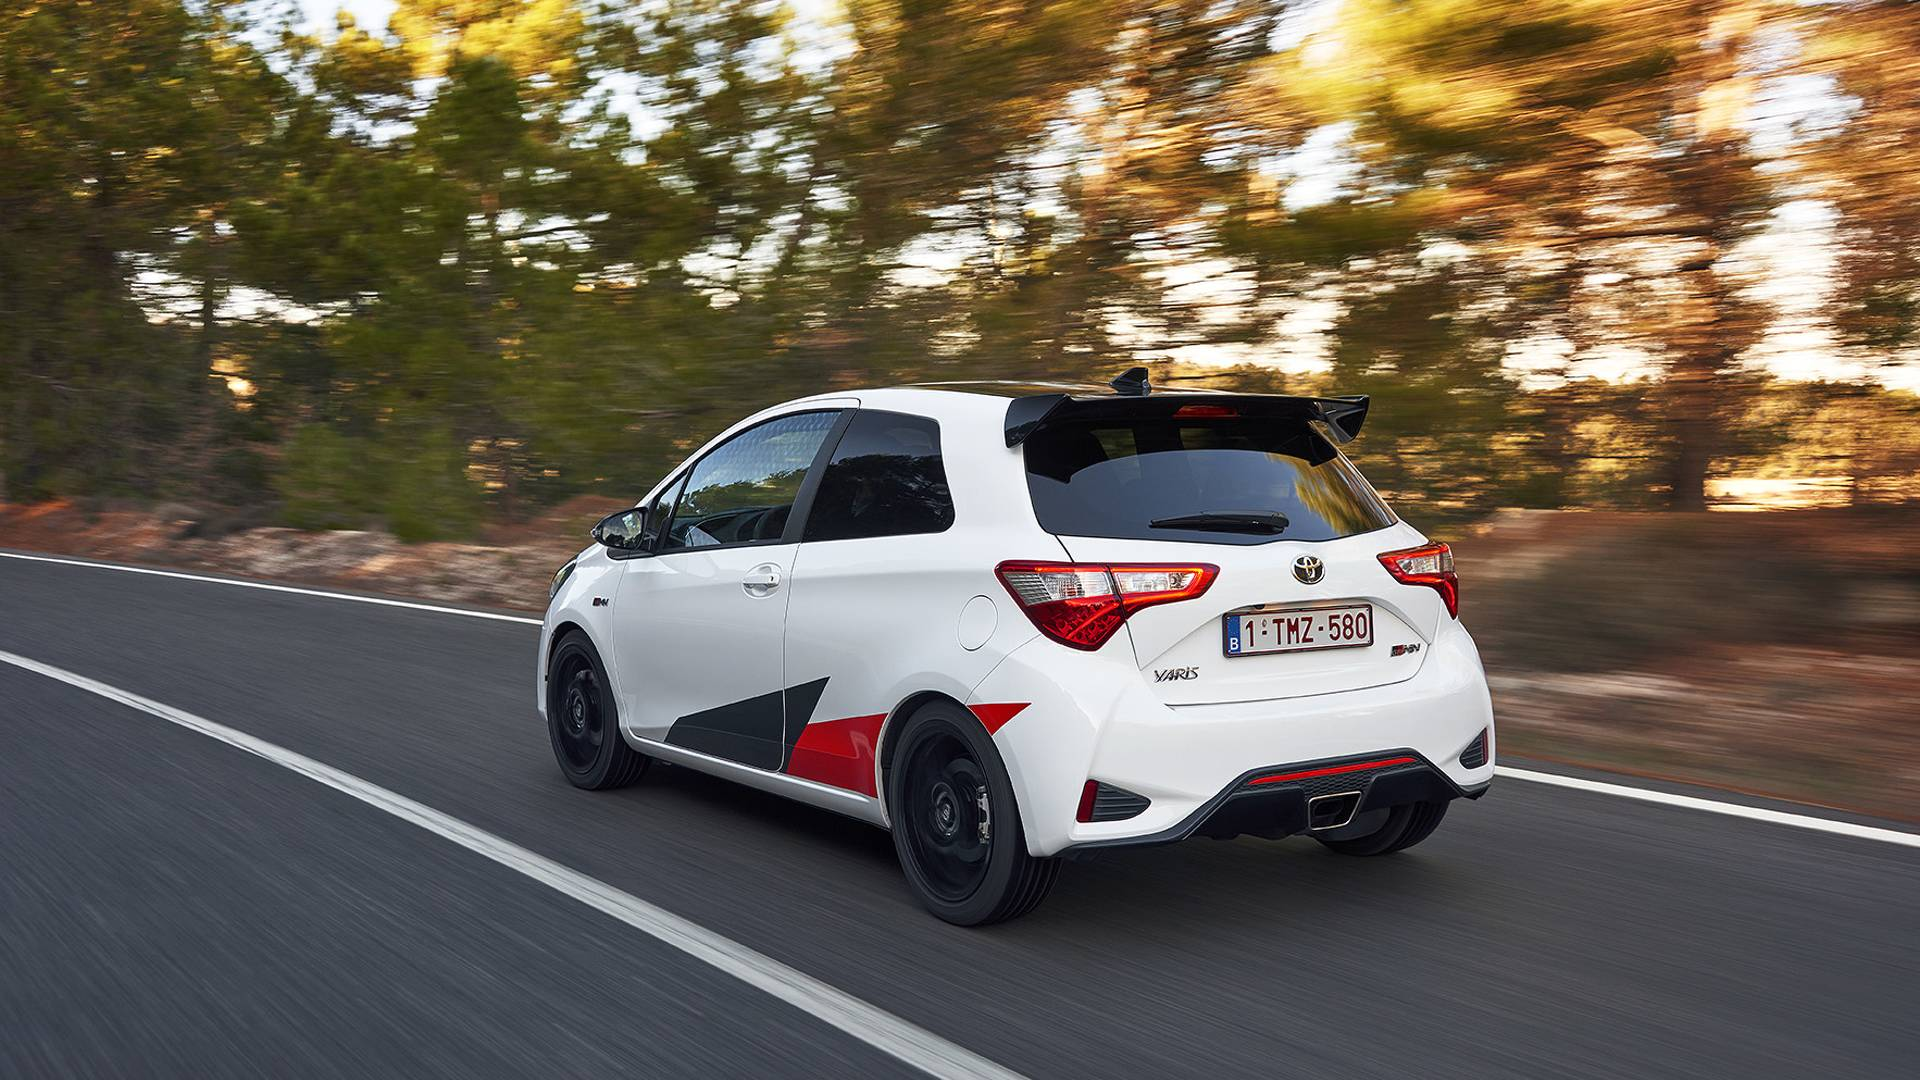 toyota yaris trd supercharger kit new agya 1200cc see the supercharged grmn go from 0 to 100 mph